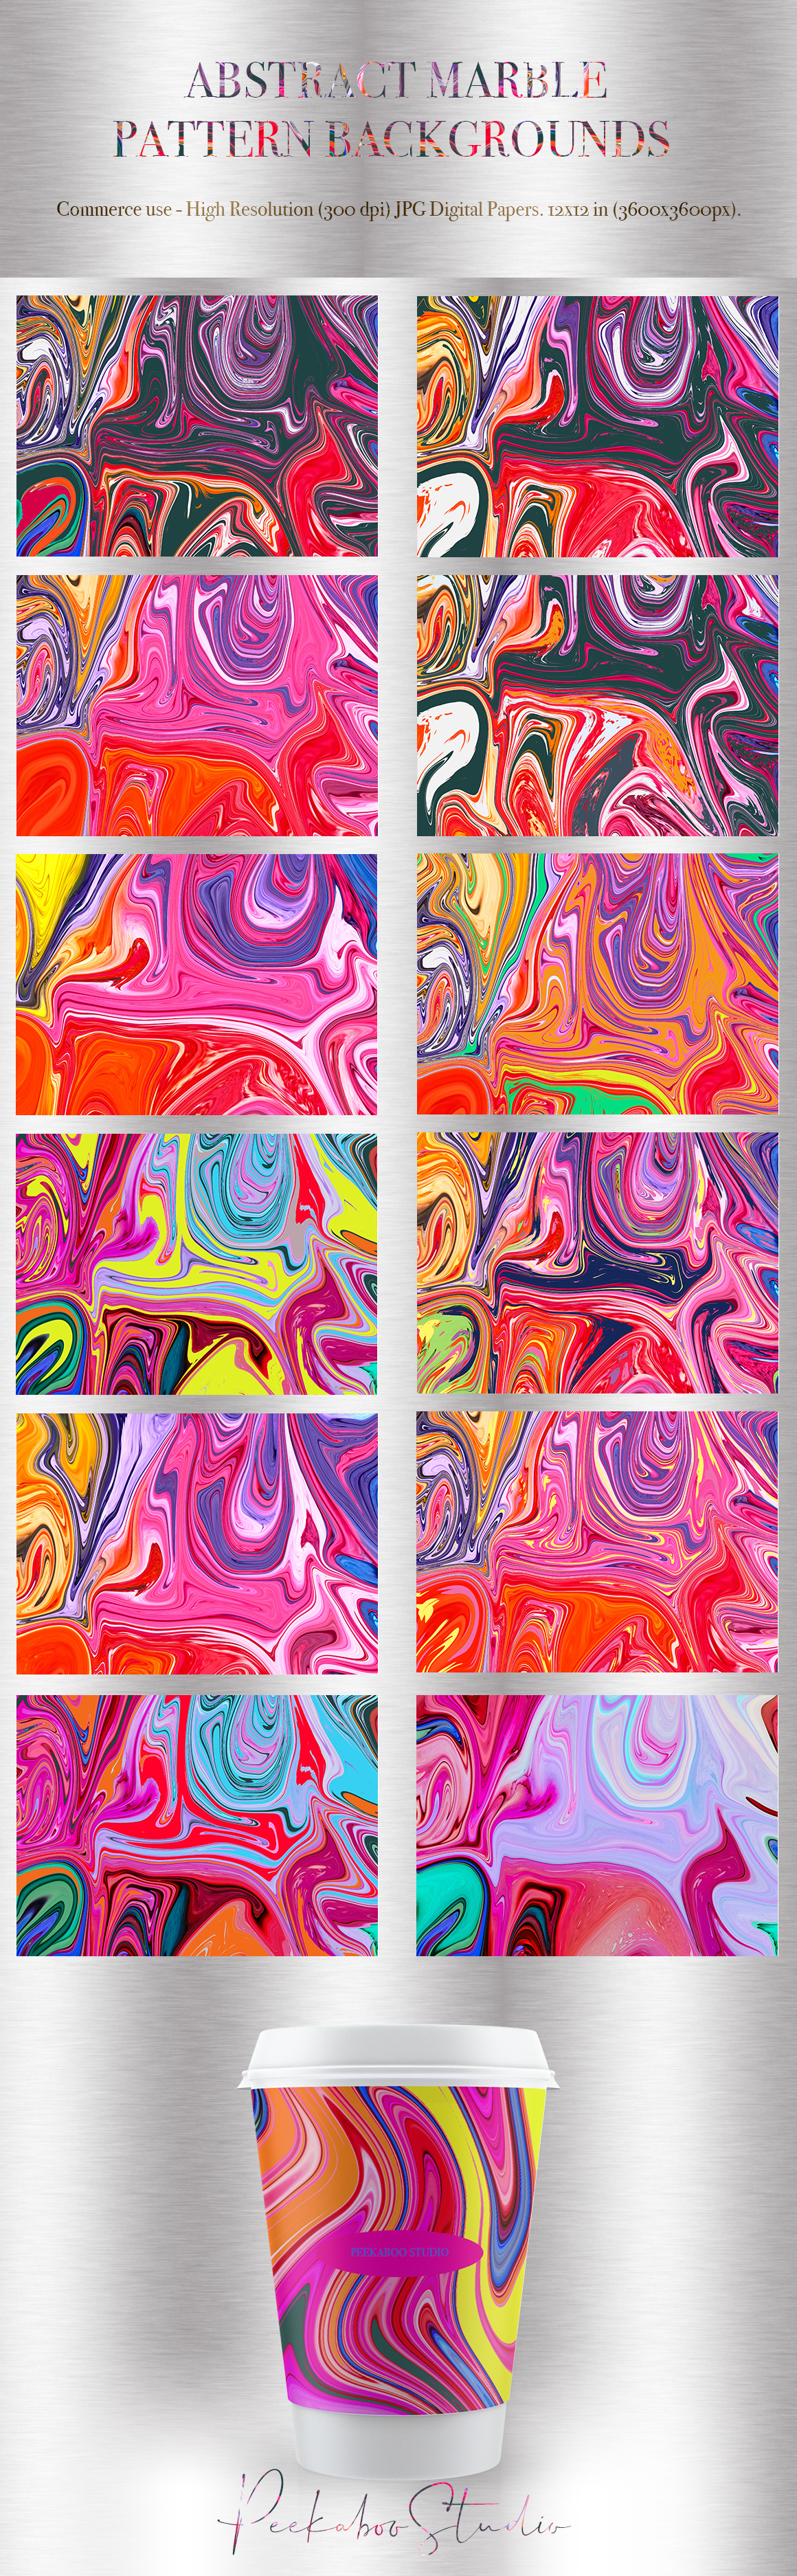 Abstract Marble Pattern Backgrounds P.2